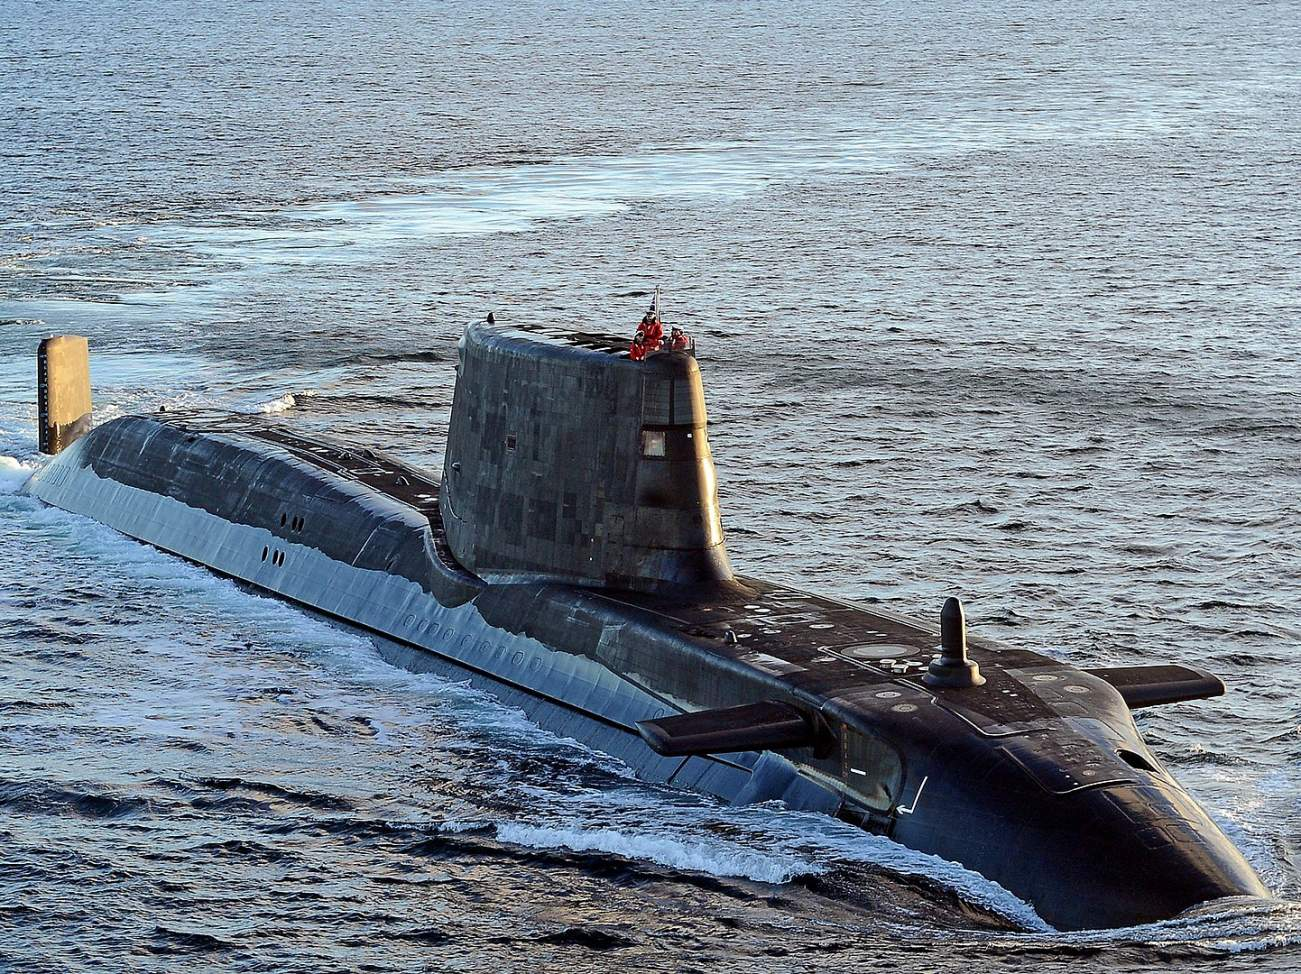 Britain's Astute-Class Submarines Are A Big Headache For Russia's Navy